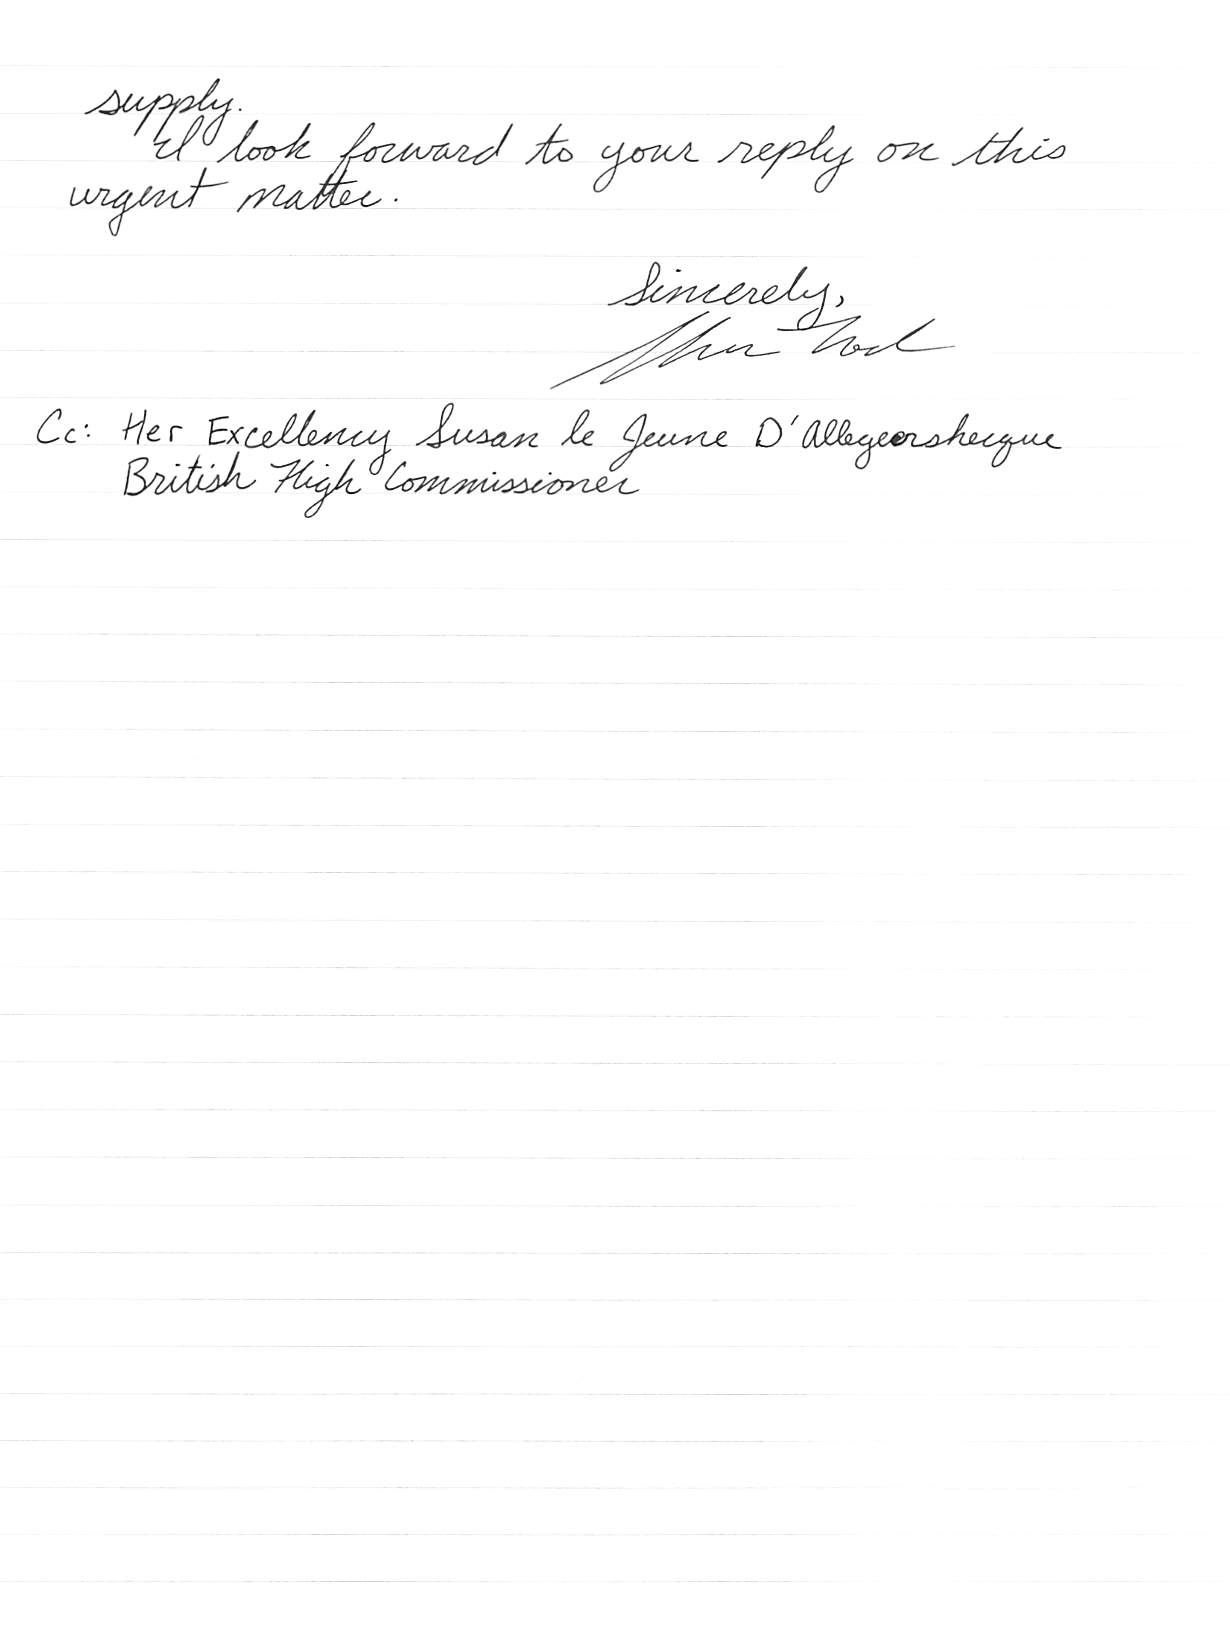 hand written letter, page 2